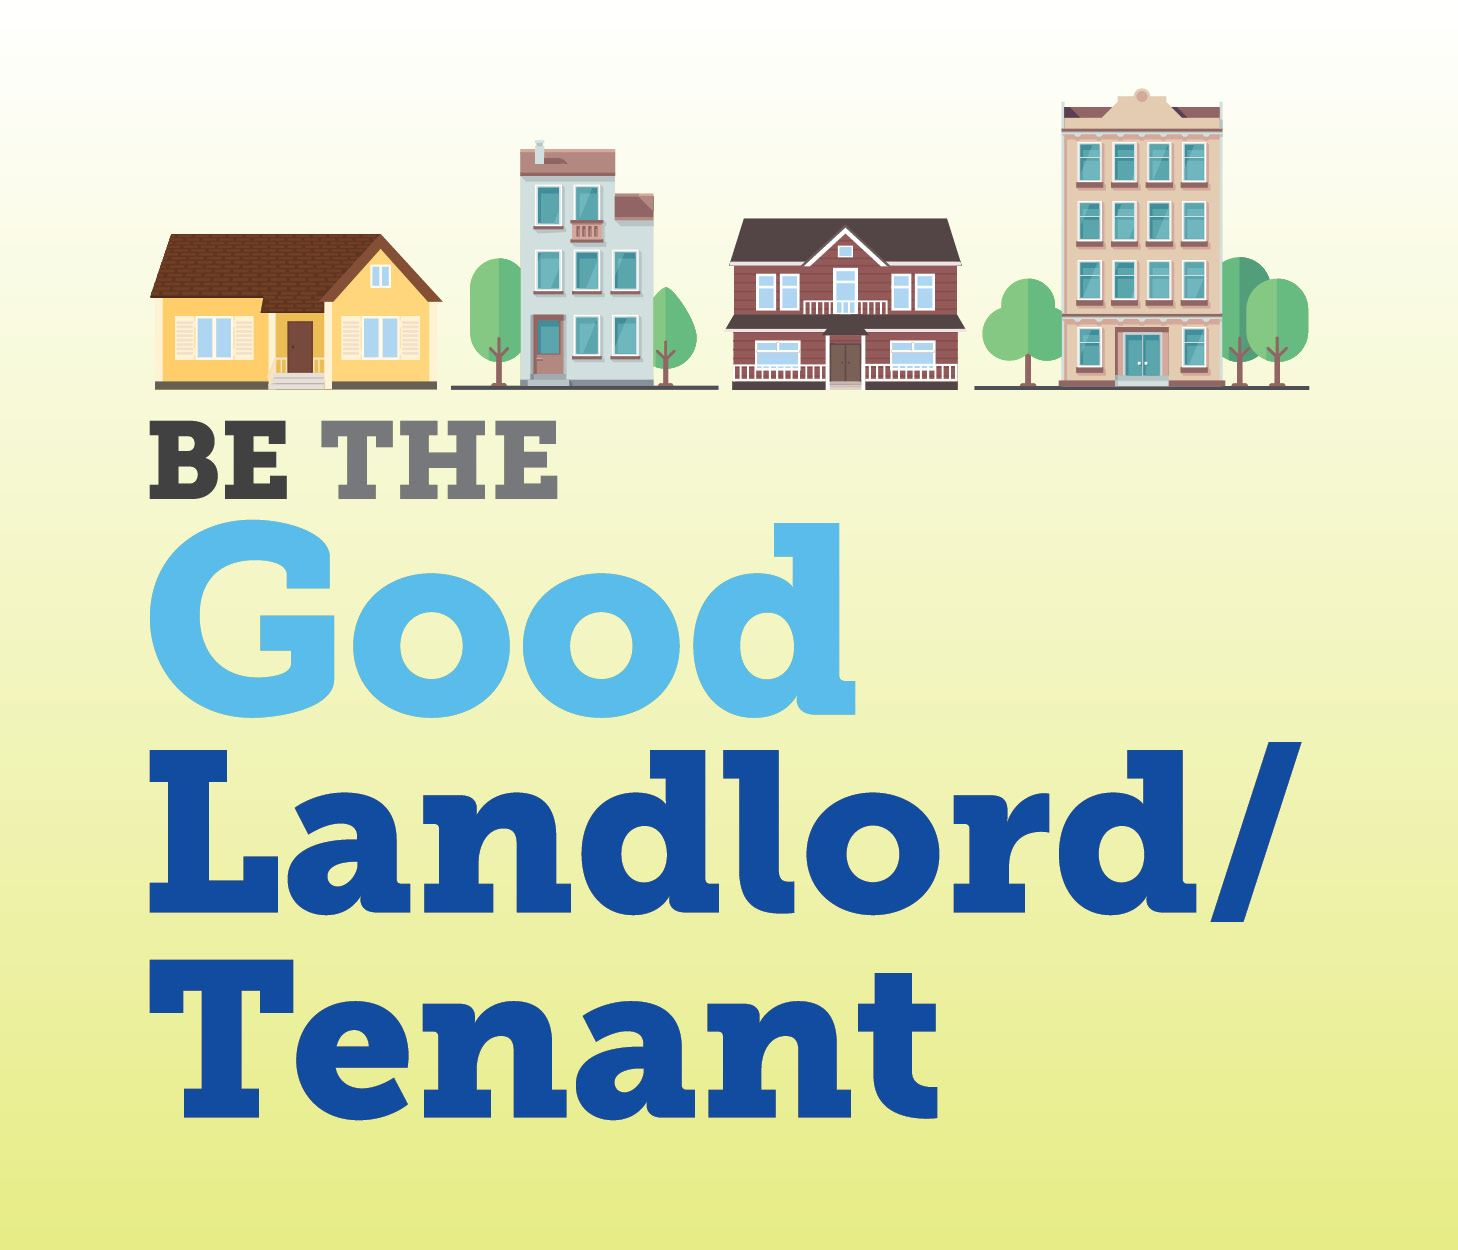 CE Landlord_Tenant Hightlight